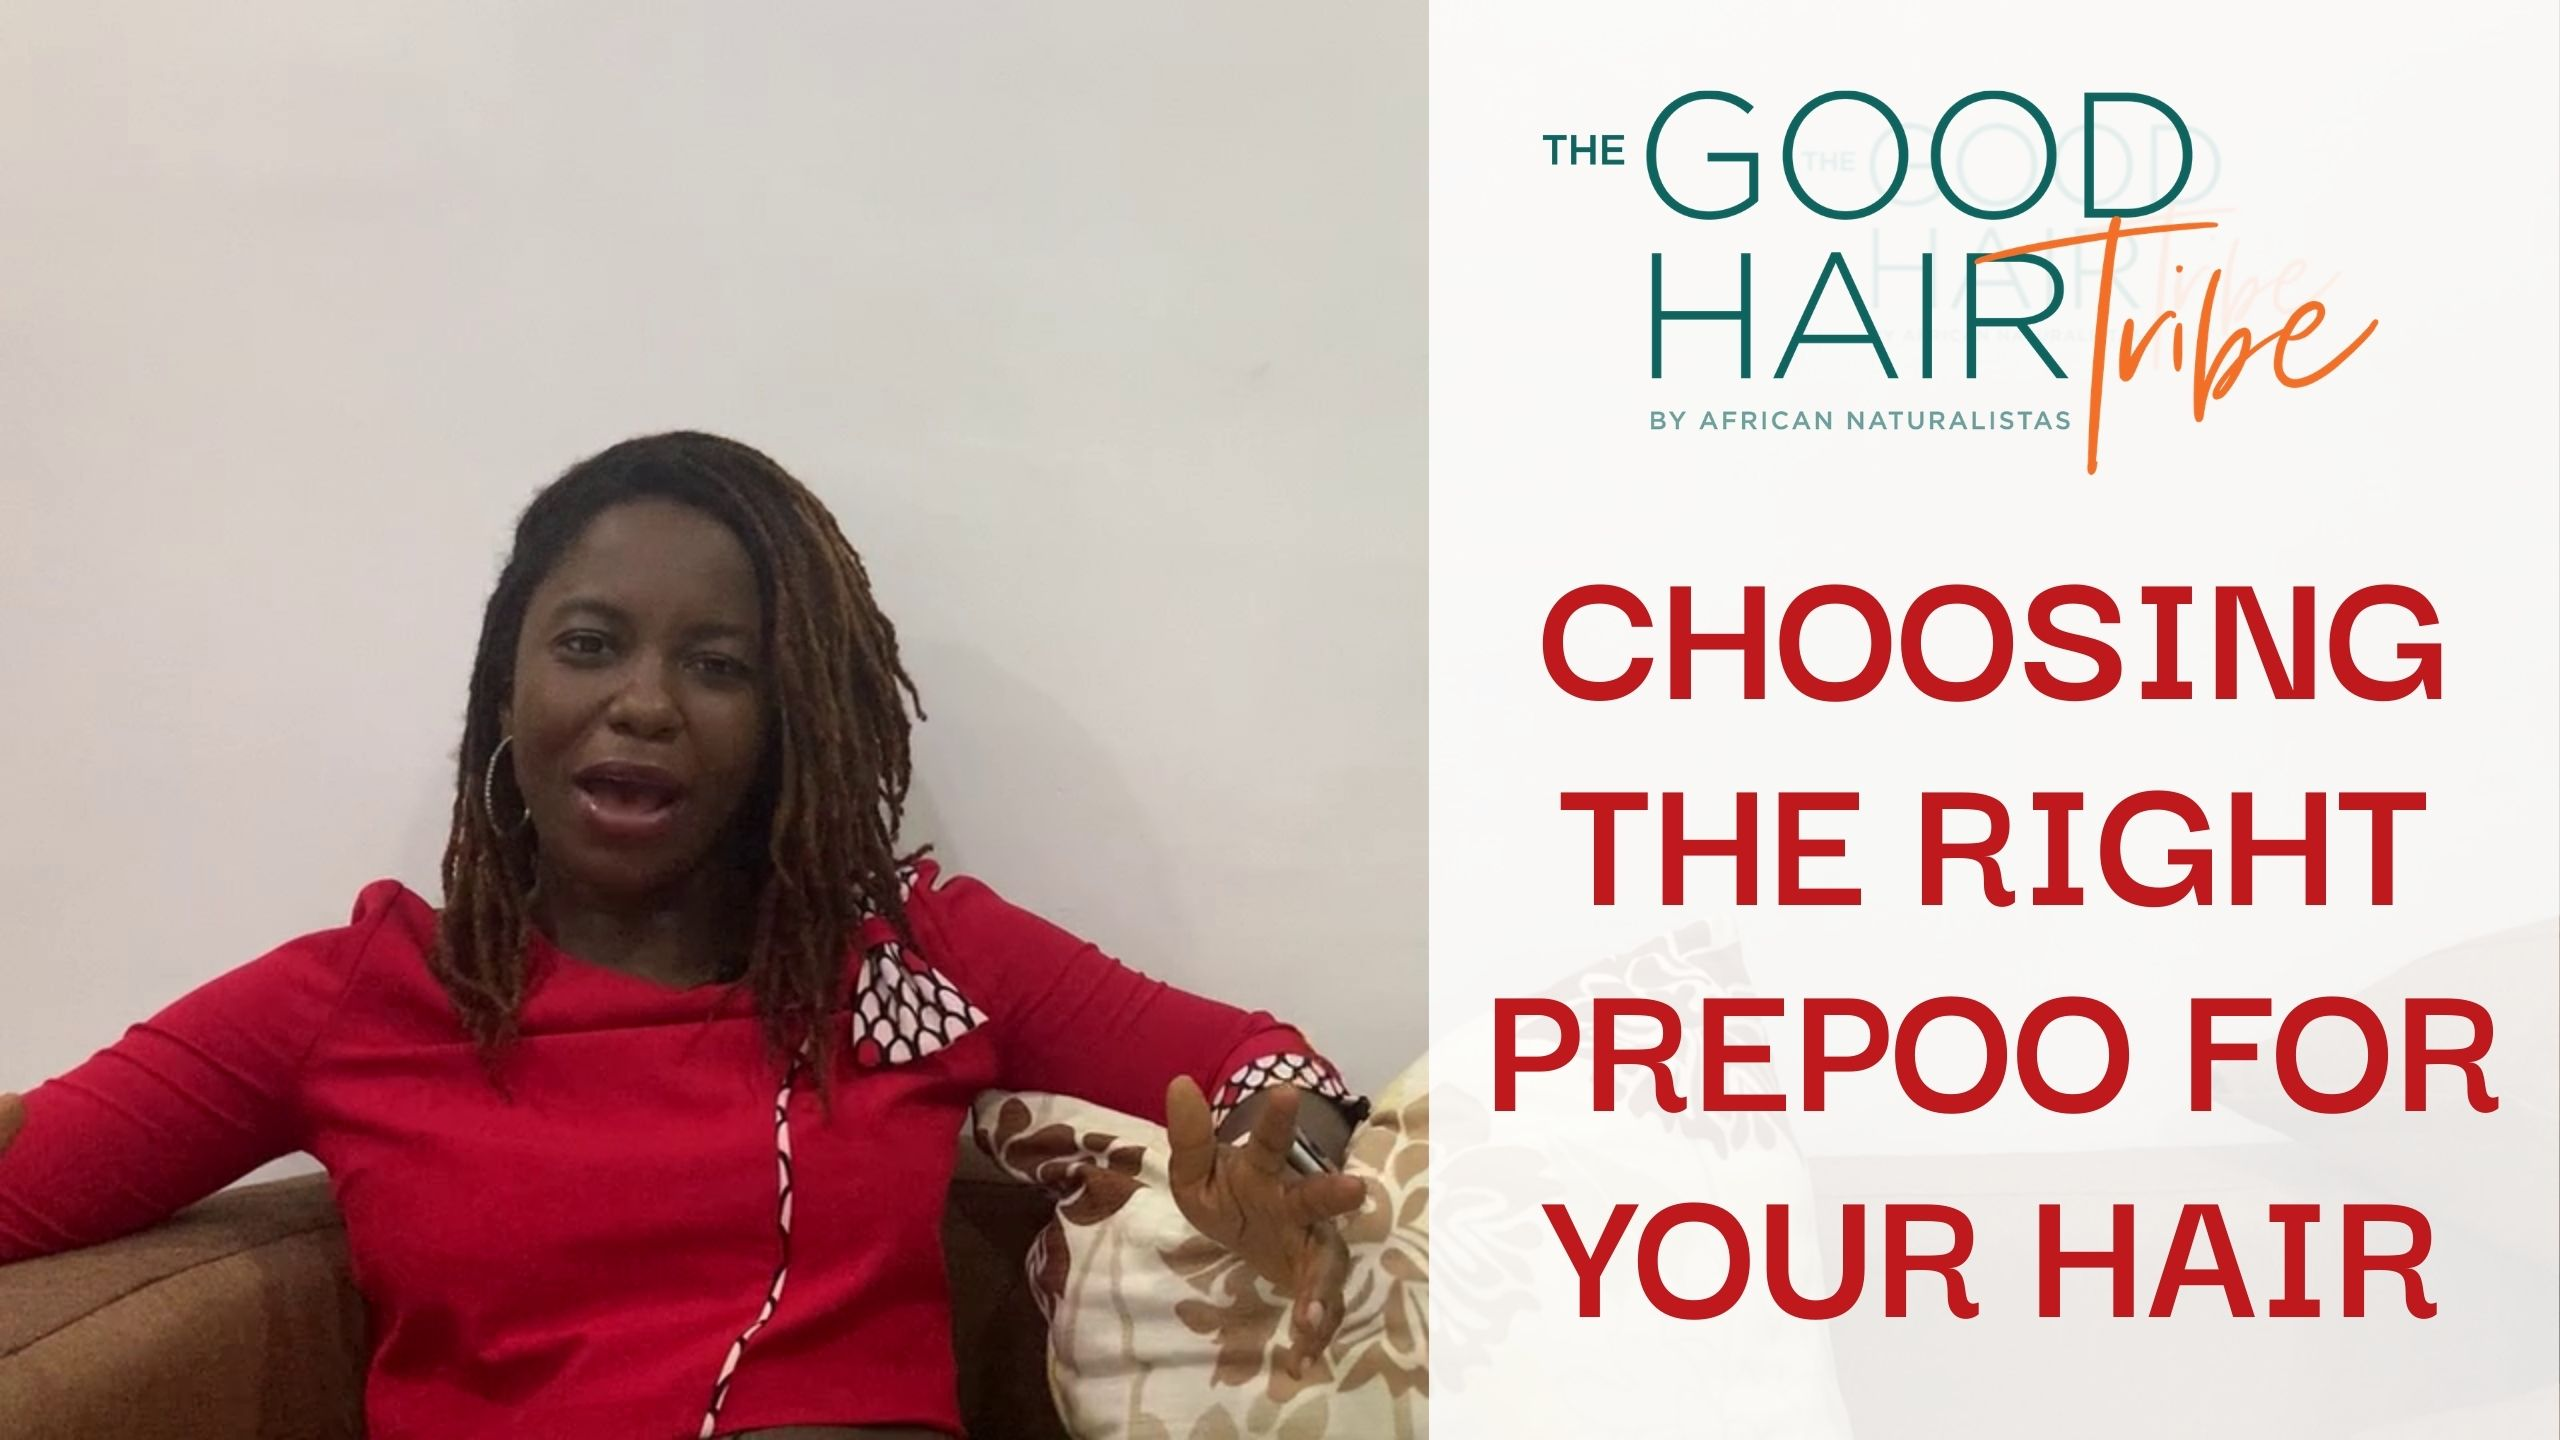 Choosing the right Prepoo for your Hair